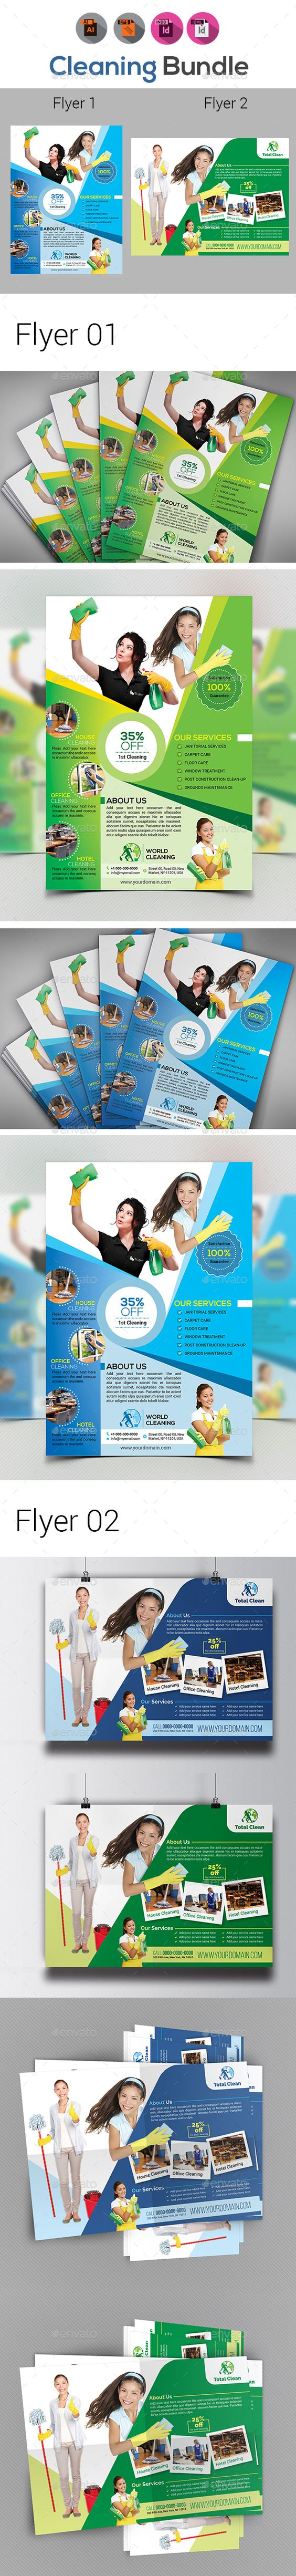 cleaning service flyers templates limpeza cleaning service flyers templates corporate flyers here graphicriver